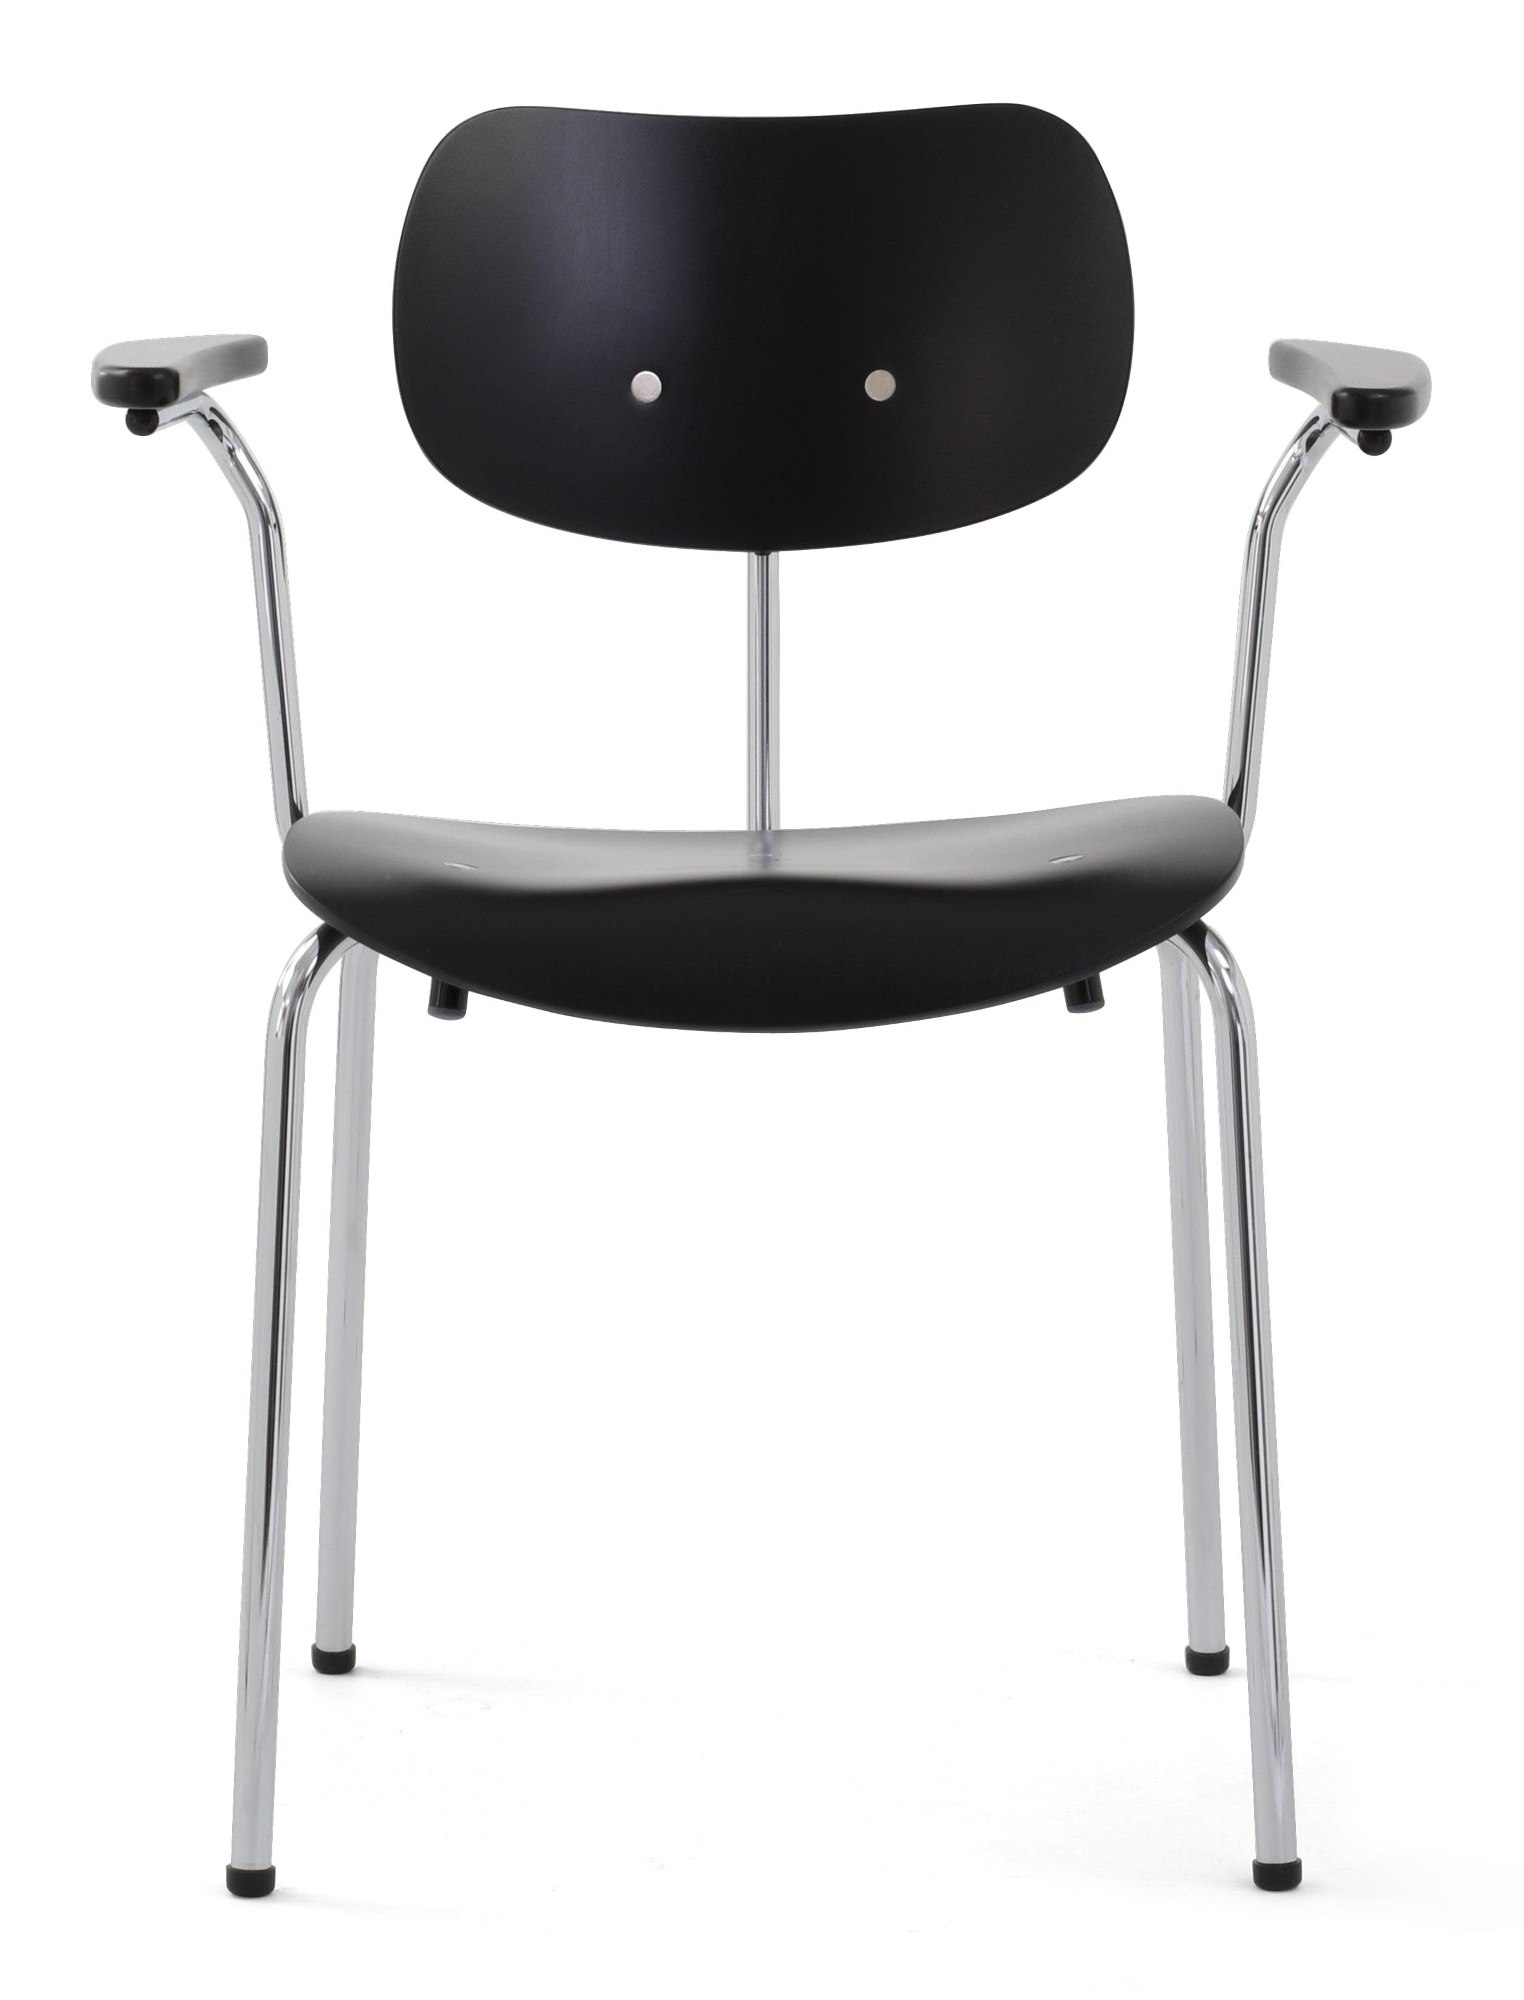 SE 68 SU chair stackable Wilde+Spieth